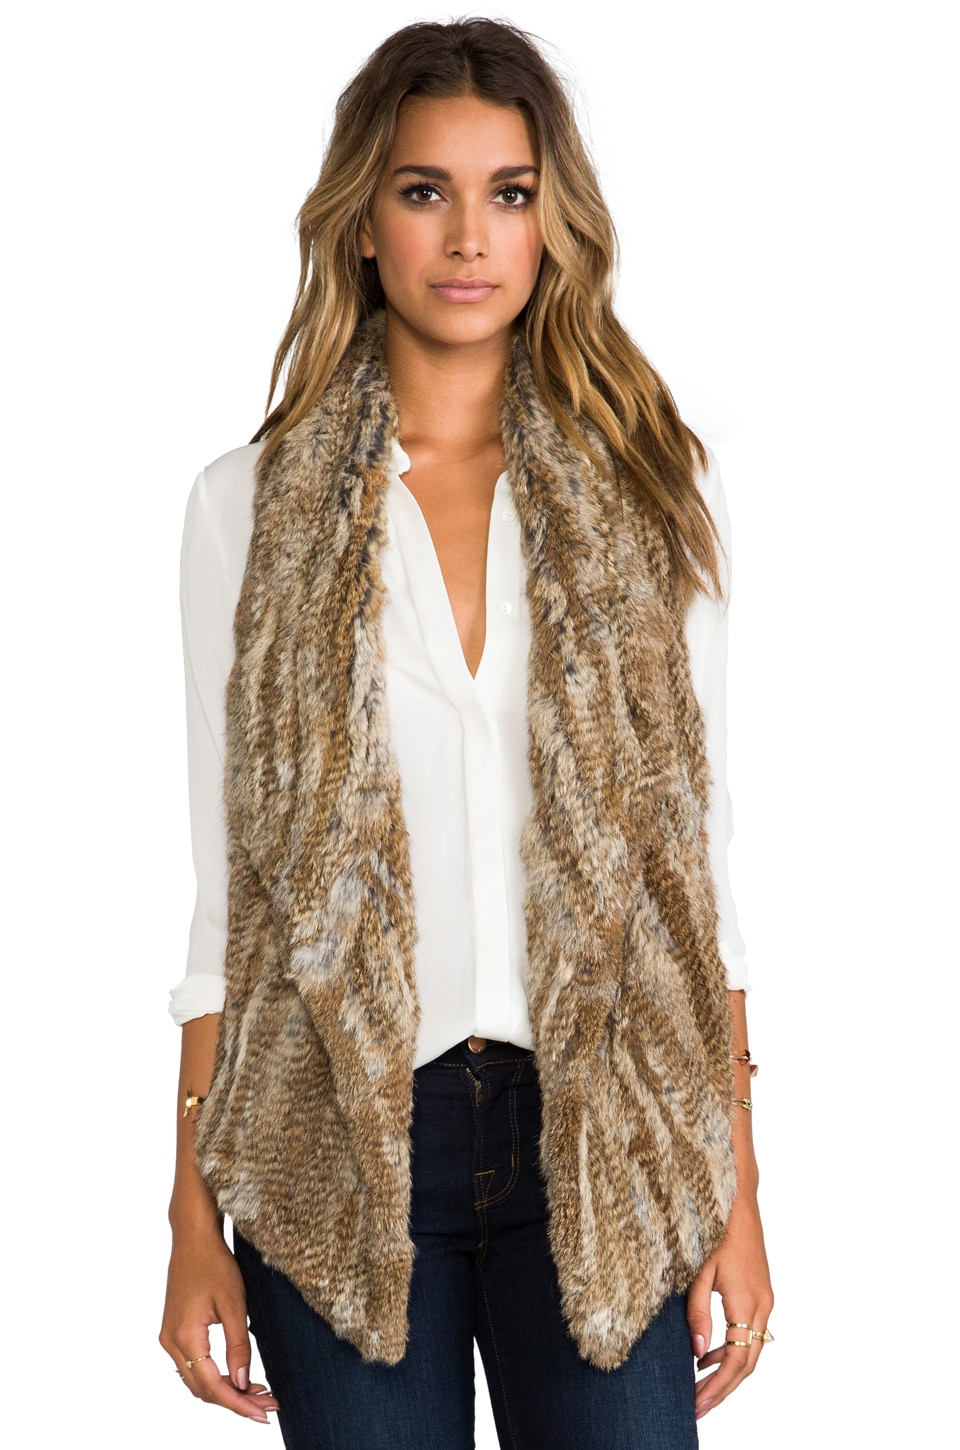 Elizabeth and James Menia Vest in Natural/Brown